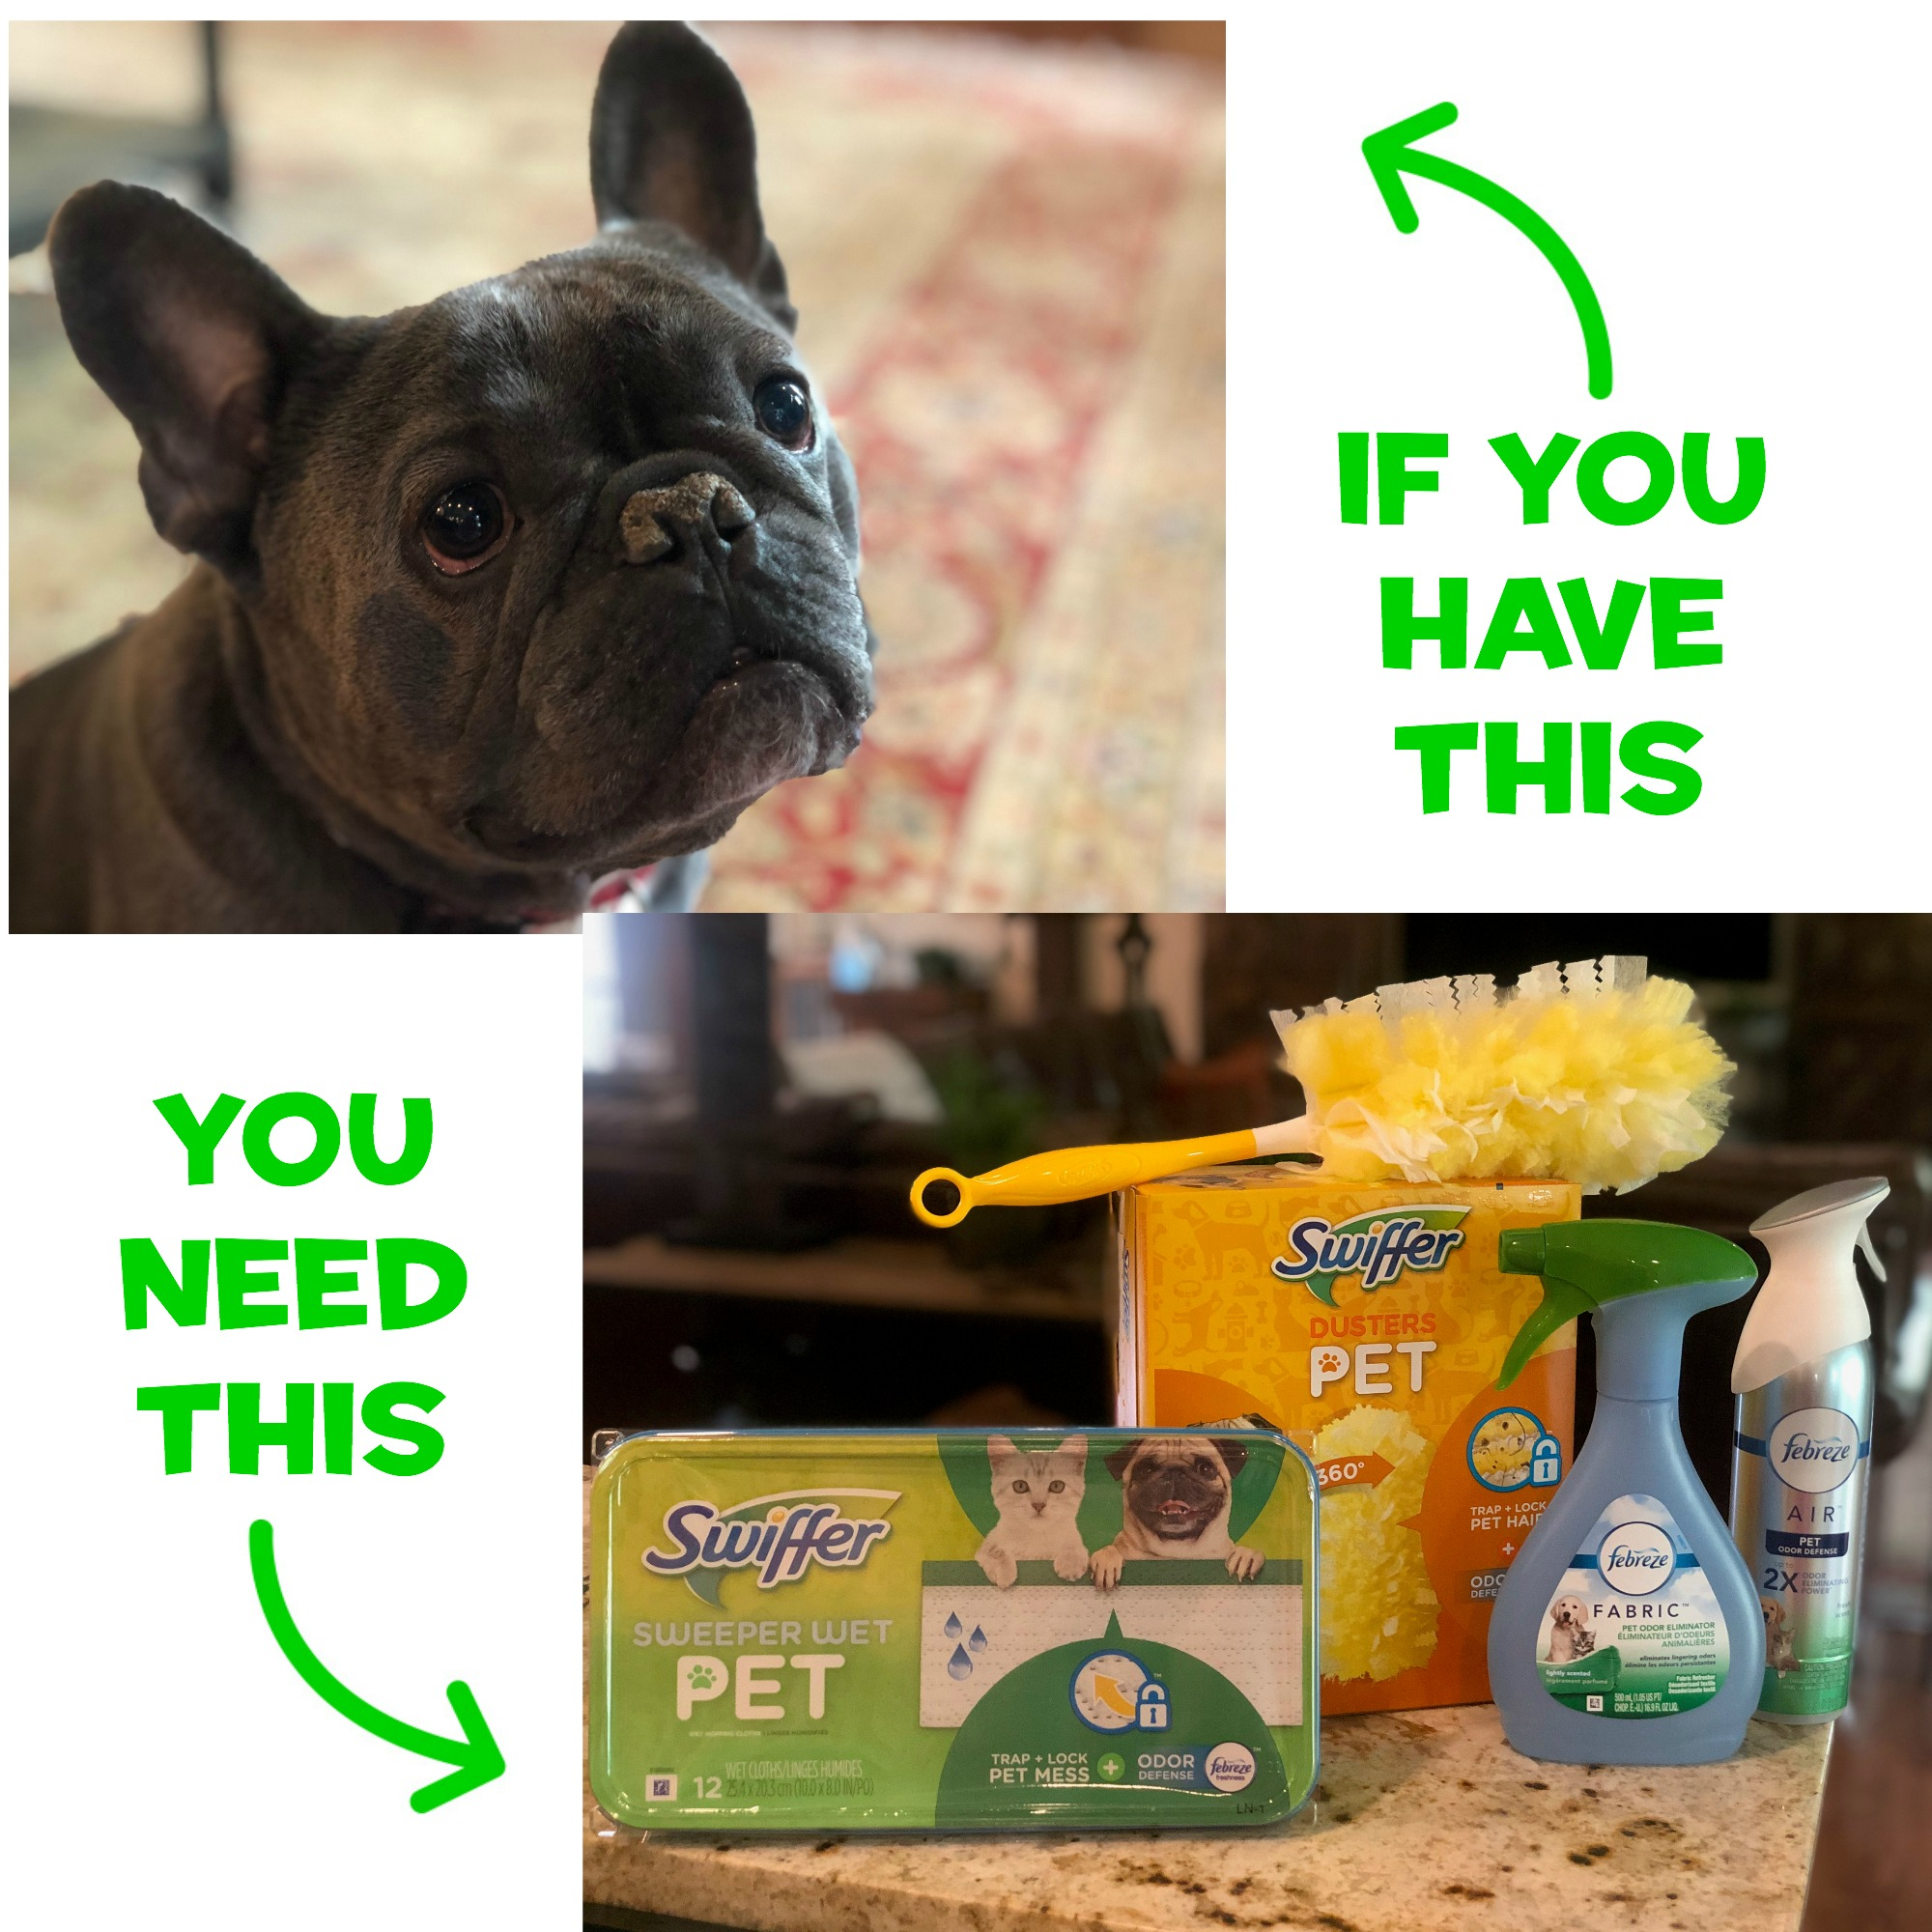 Swiffer And Febreze Products To Help Pet Owners Keep Their Home Fresh & Clean - #DontSweatYourPet 4